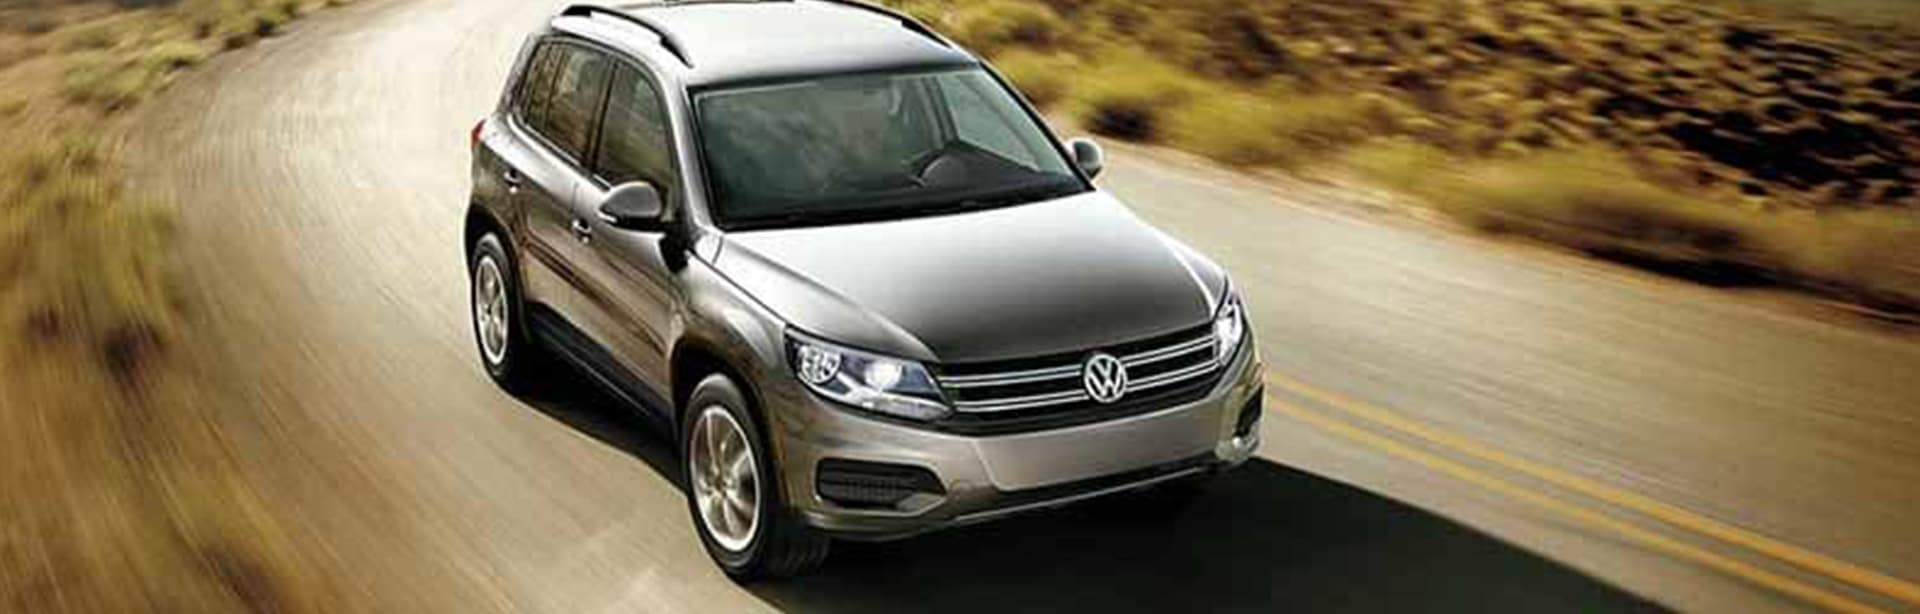 What Are the Perks of Buying a CPO Volkswagen?